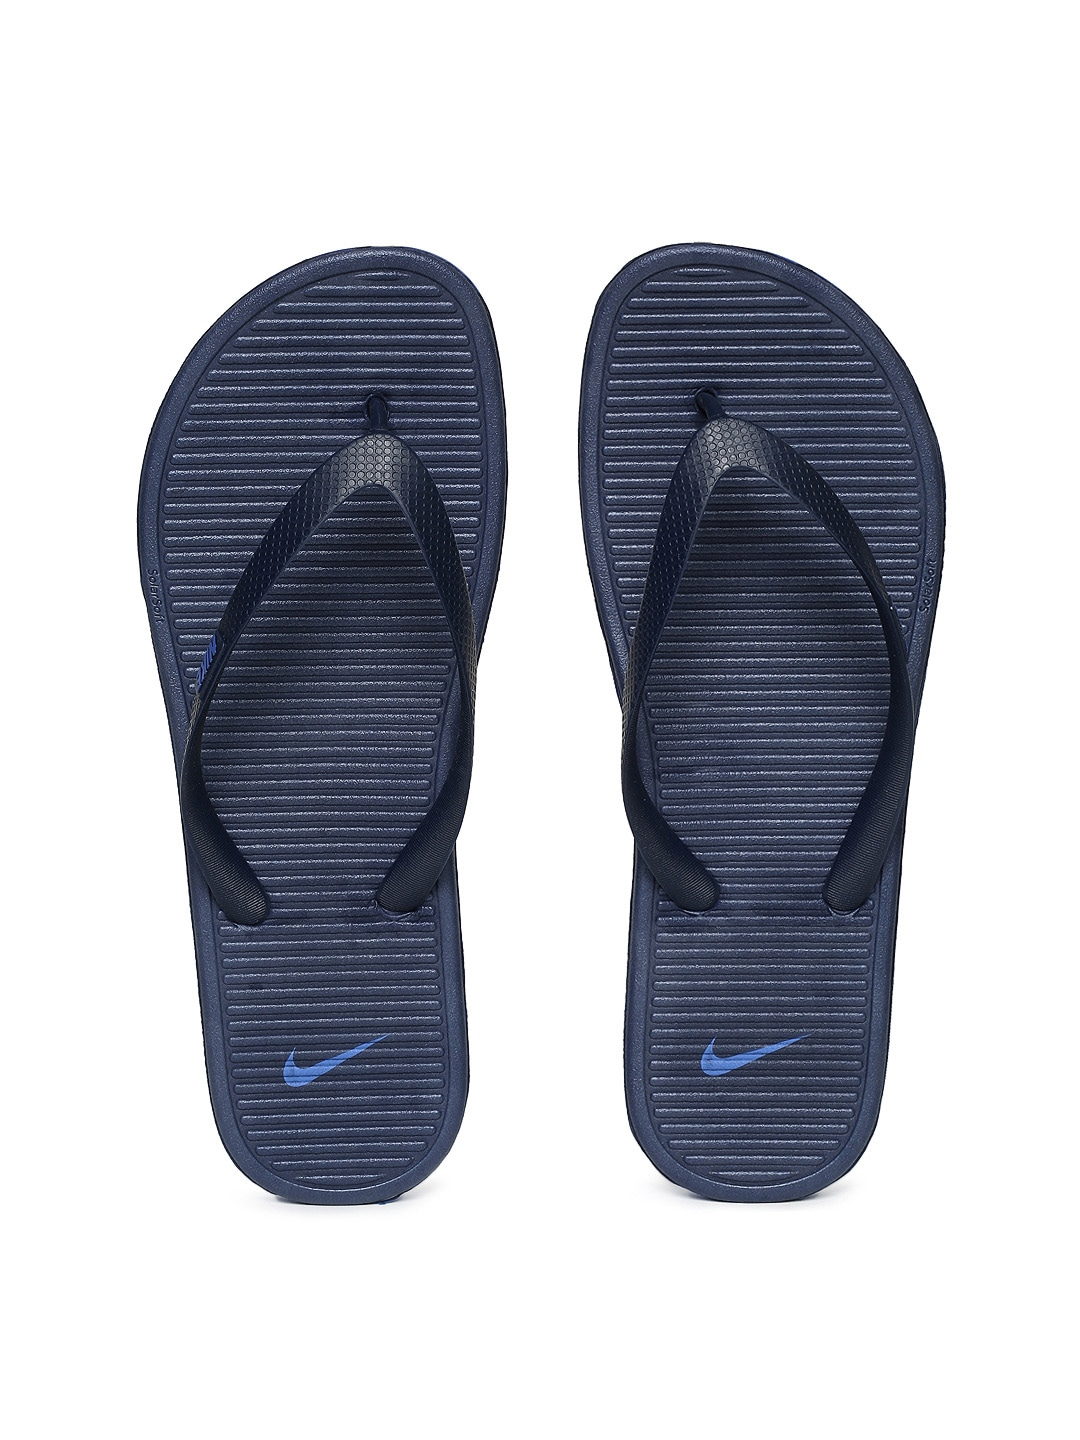 752306b66bd6 Nike Flip-Flops - Buy Nike Flip-Flops for Men Women Online